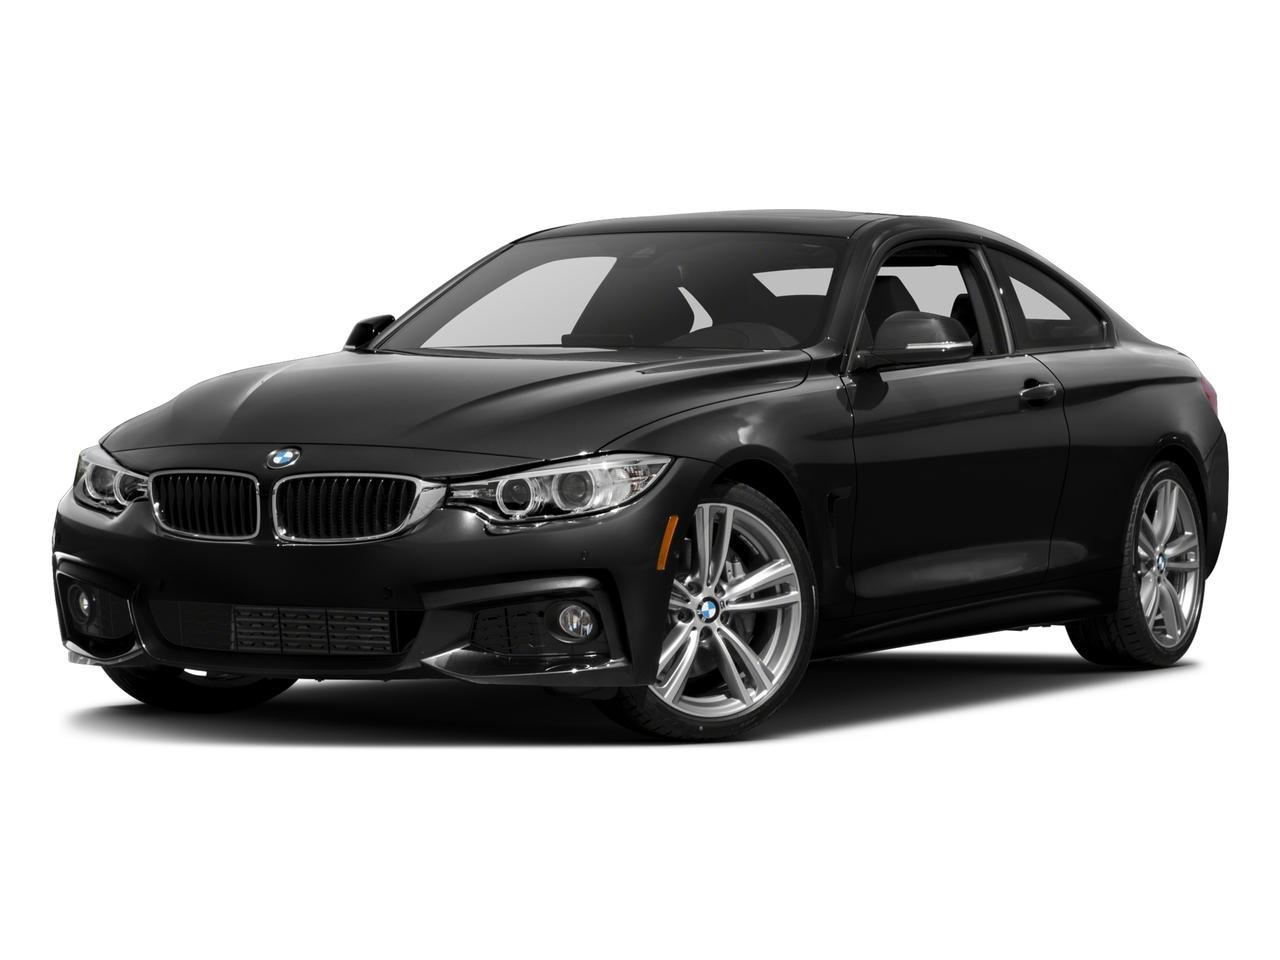 2016 BMW 435i xDrive Vehicle Photo in Puyallup, WA 98371